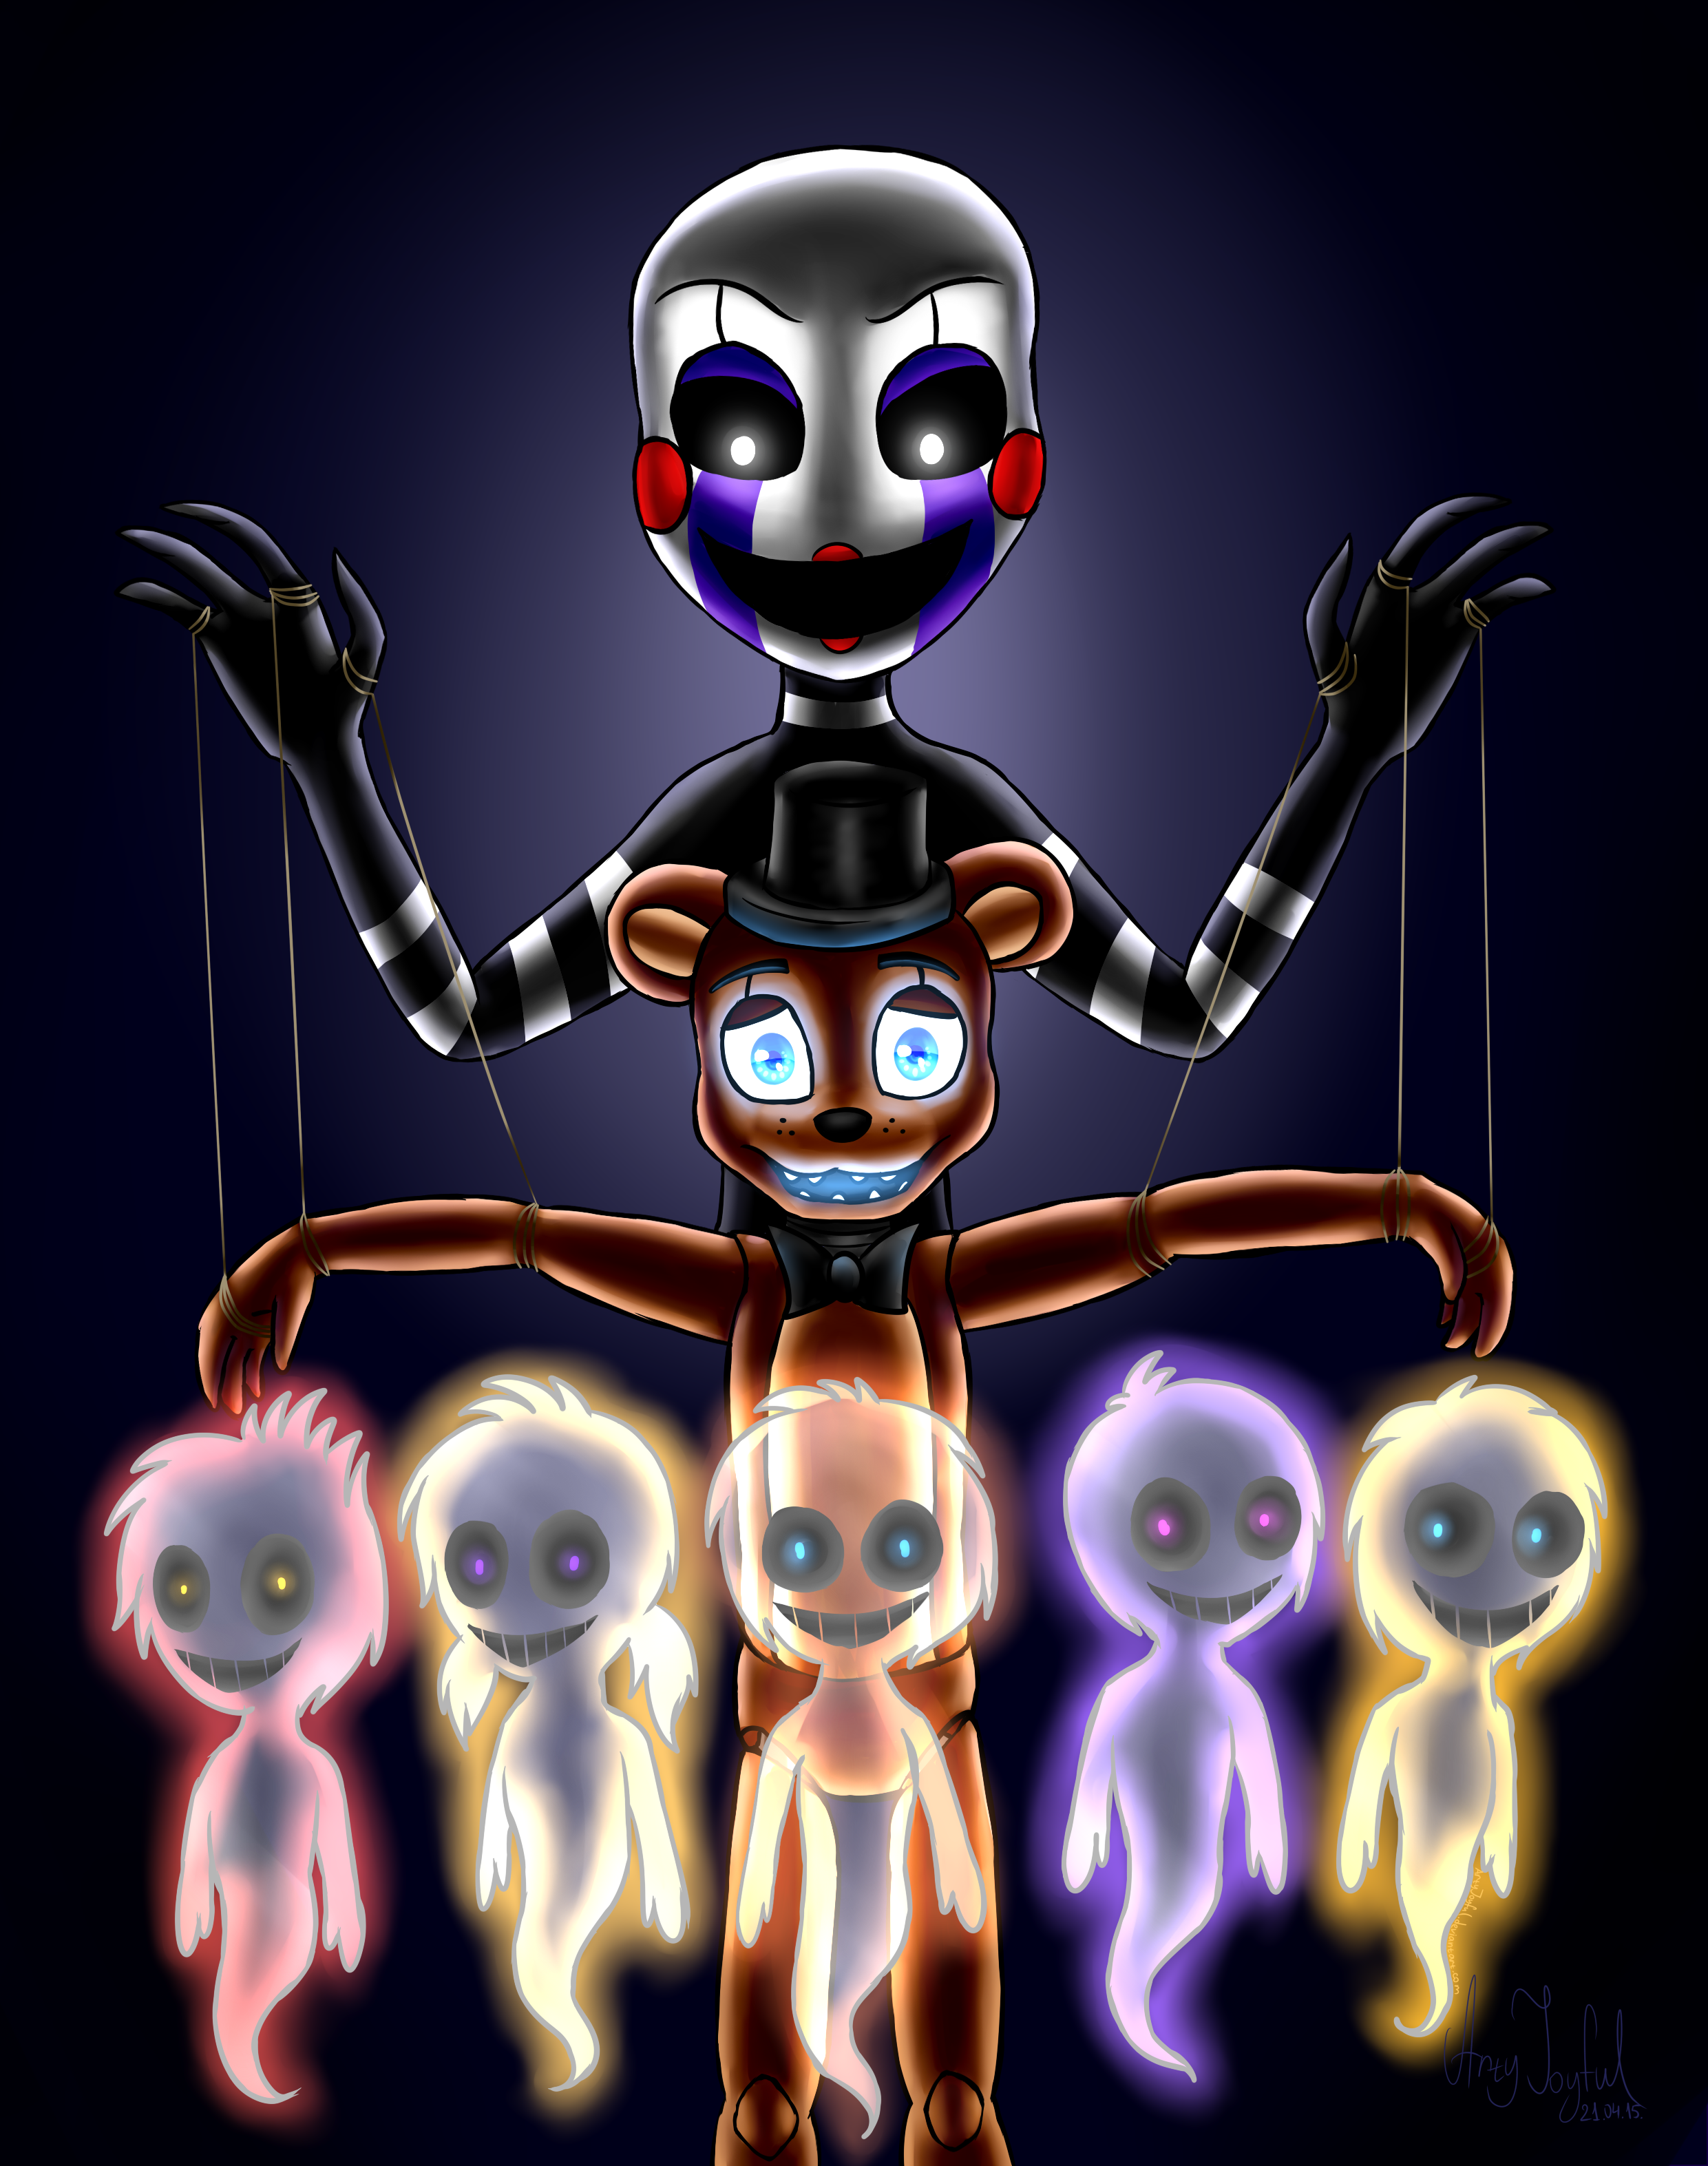 Five nights at freddys anime puppet